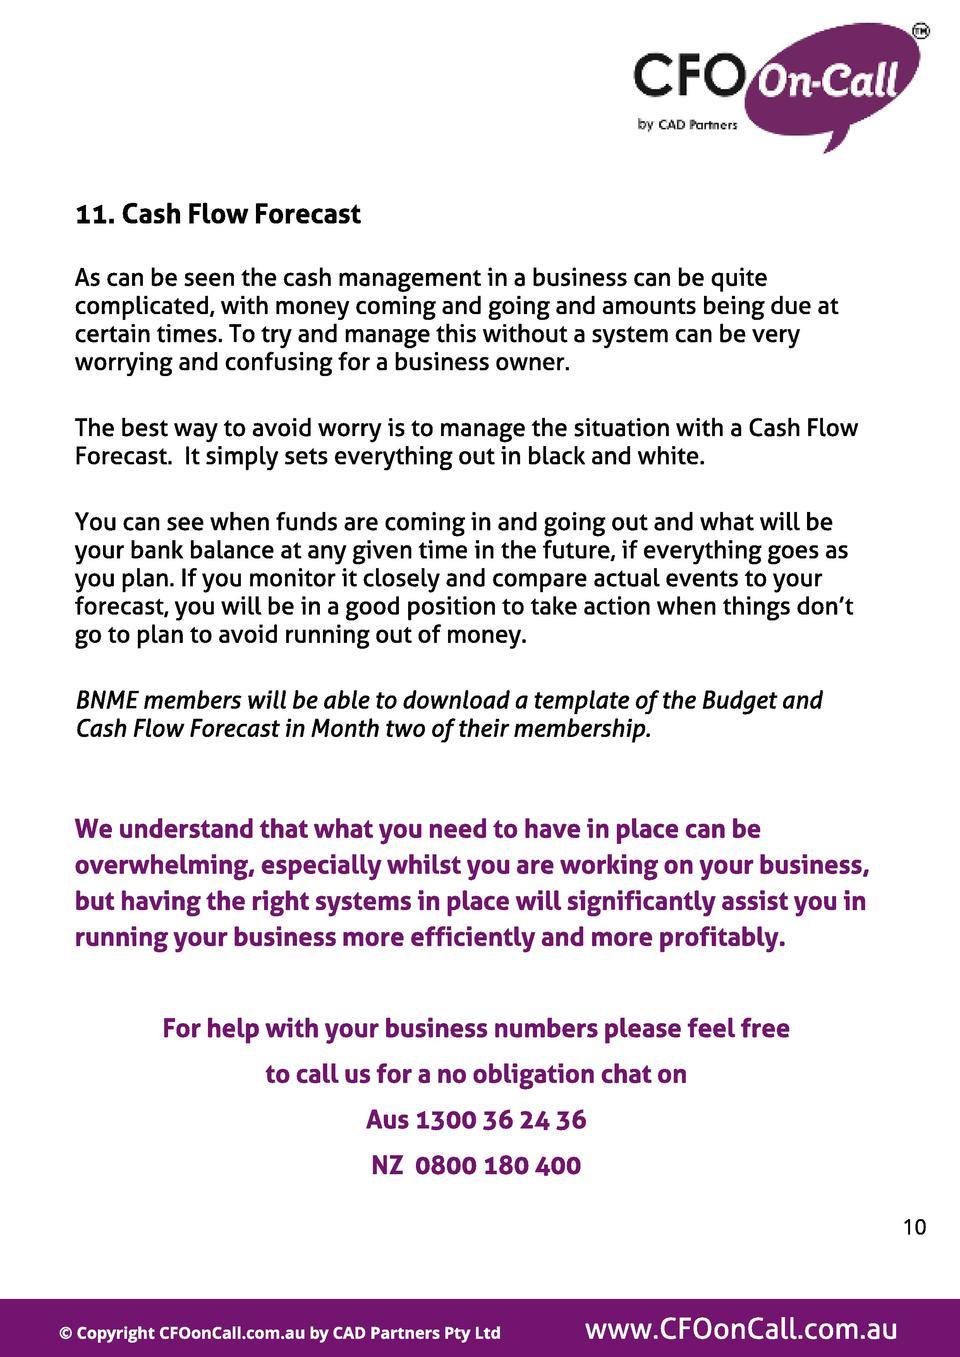 11. Cash Fl ow Forecast As can be seen the cash management in a business can be quite complicated, with money coming and g...